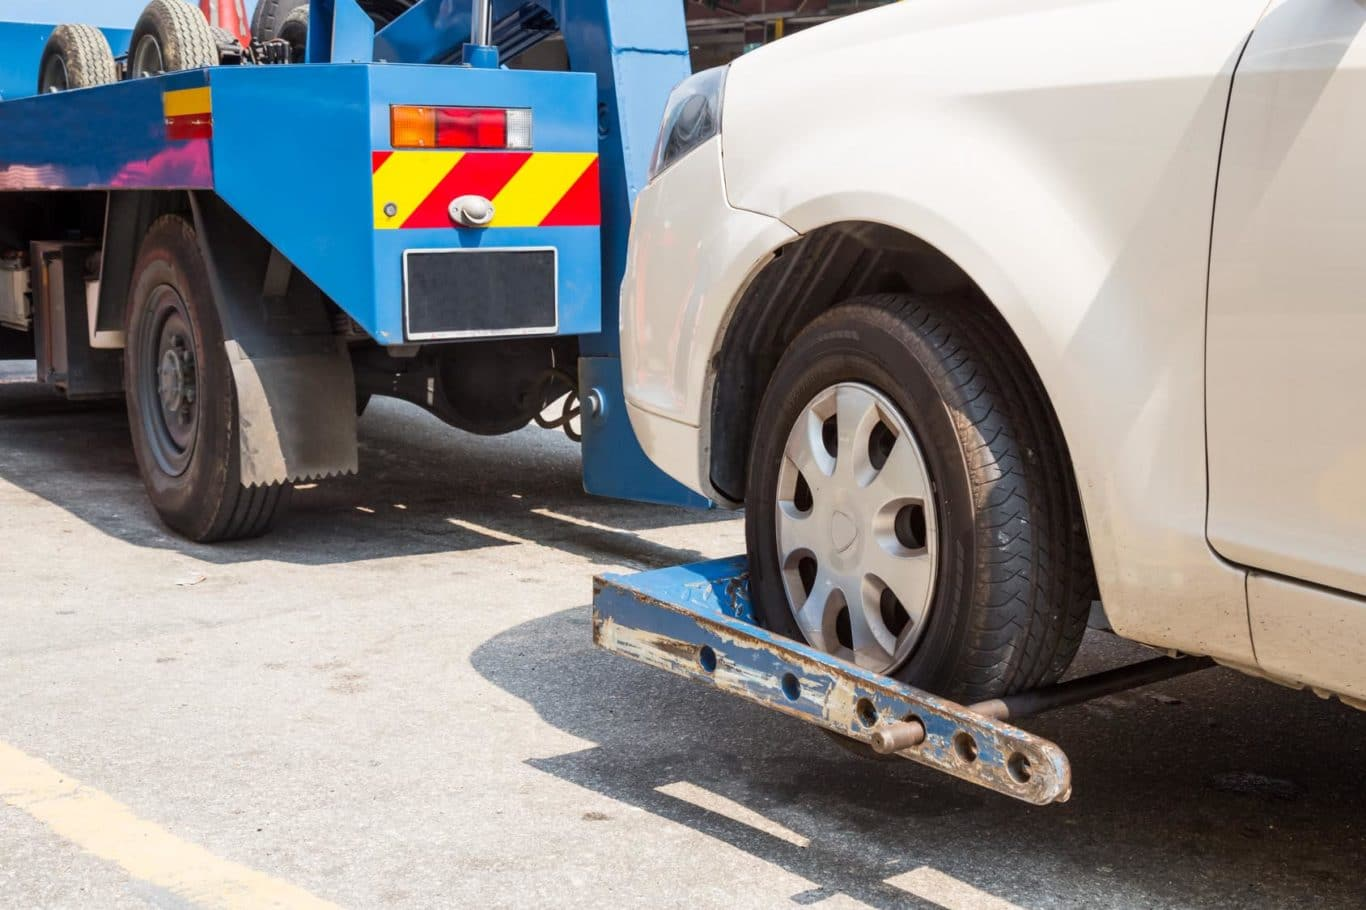 Kilmainhamwood expert Towing And Recovery Dublin services